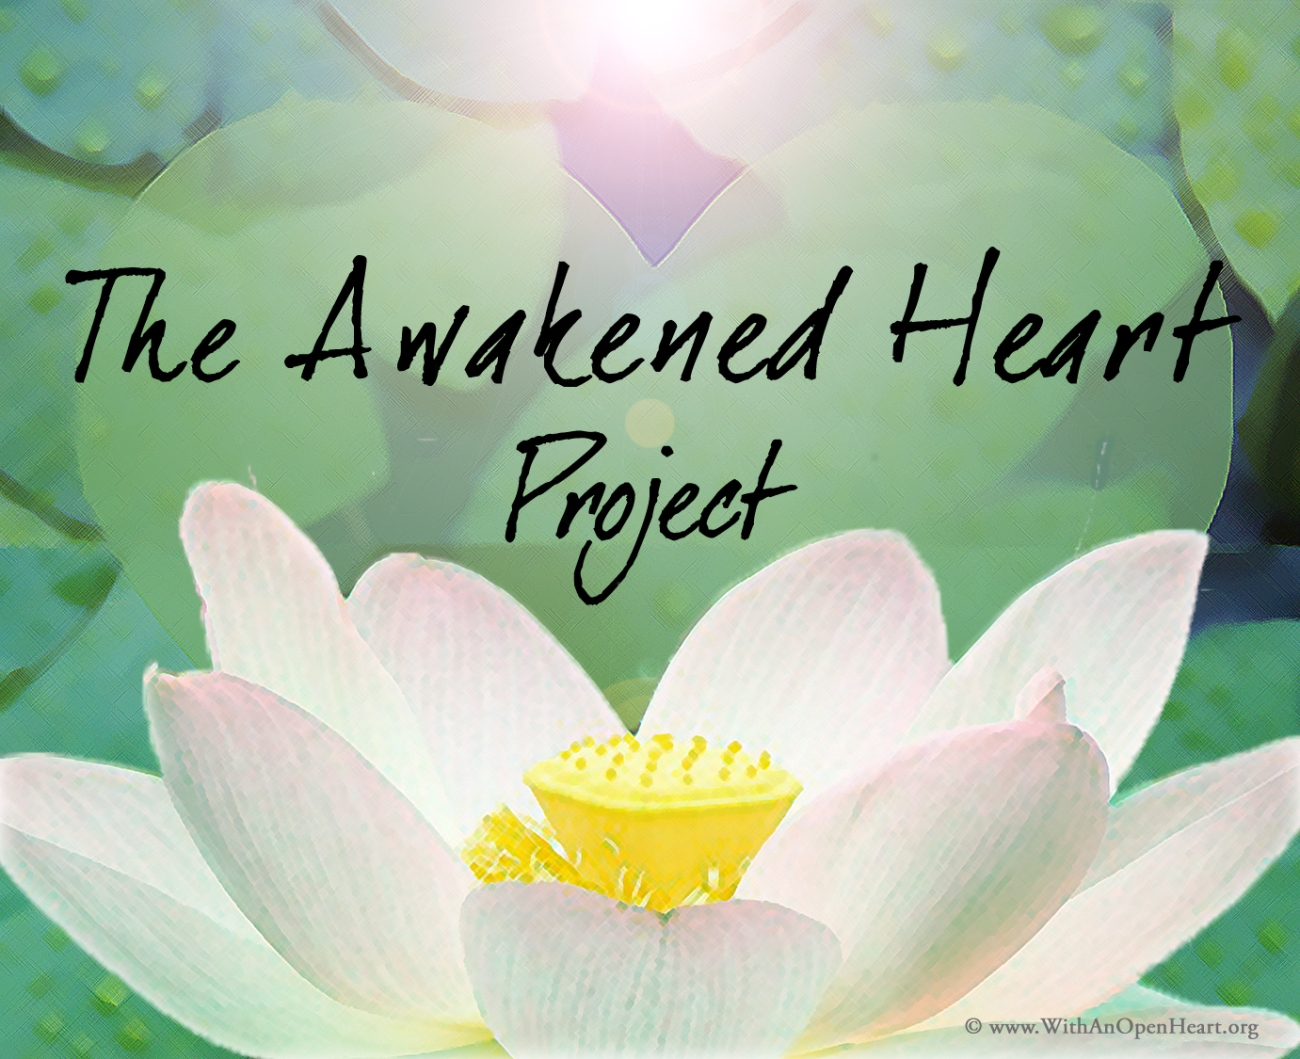 The story of the lotus flower with an open heart izmirmasajfo